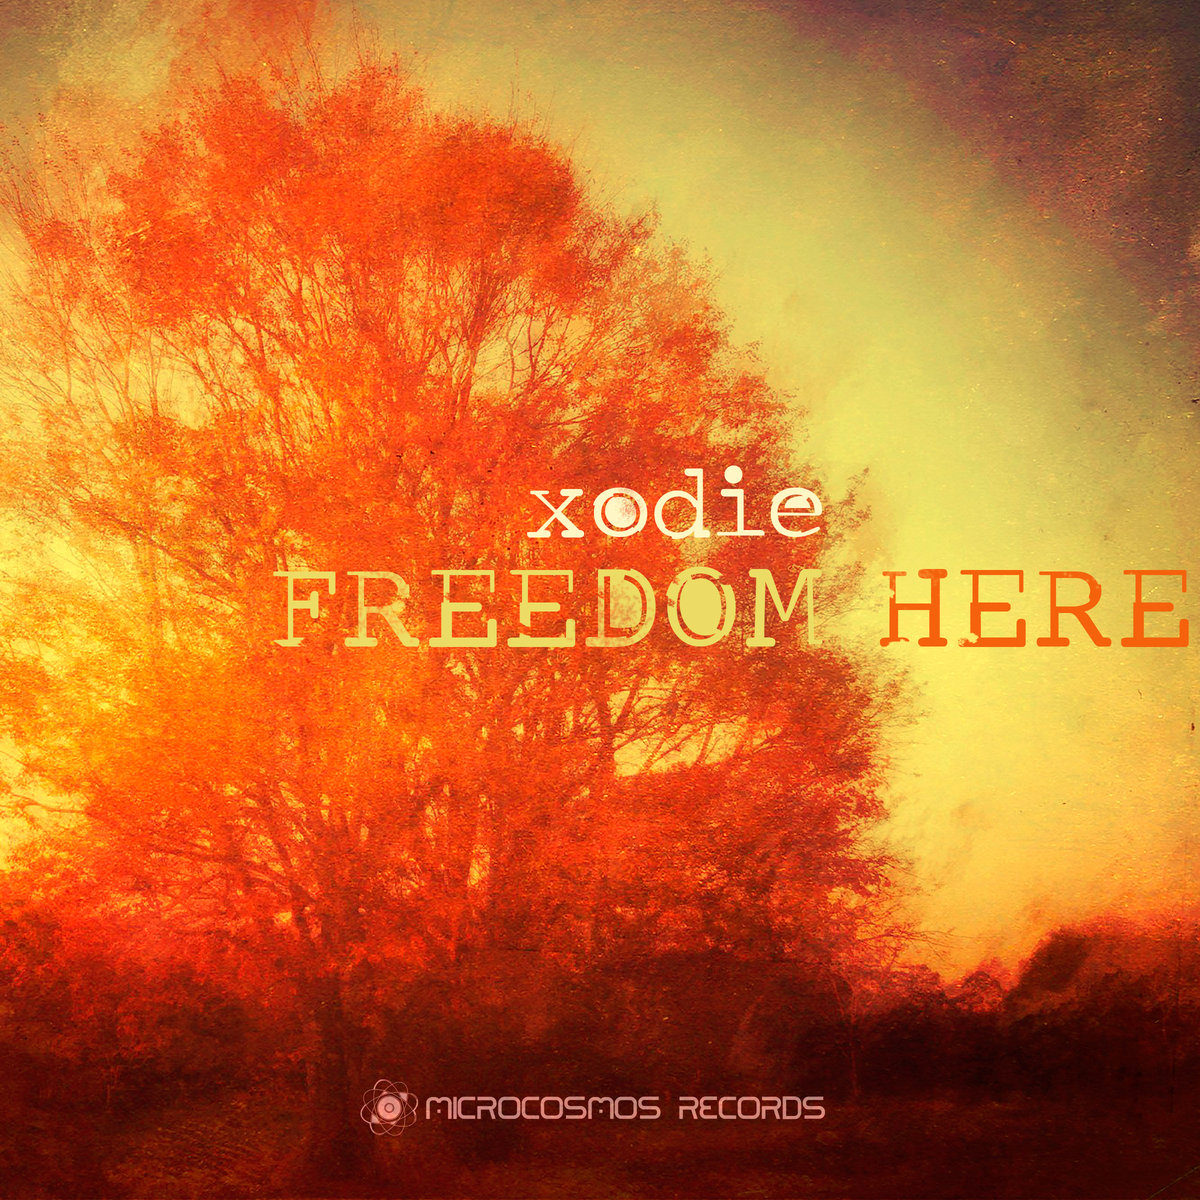 Xodie - Varganoid @ 'Freedom Here' album (ambient, chill-out)